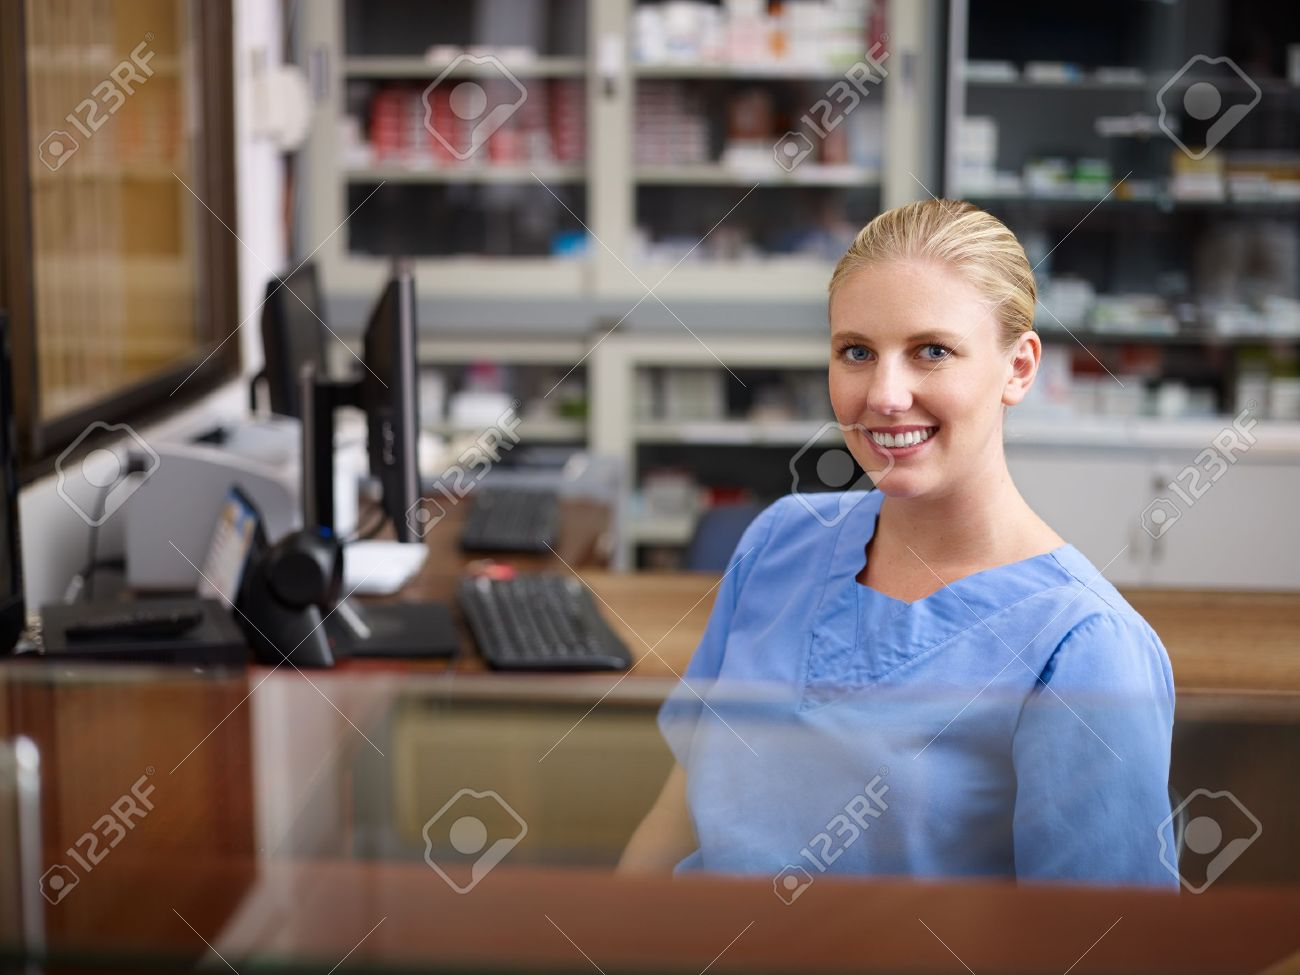 stock photo young woman at work as receptionist and nurse in hospital looking at camera